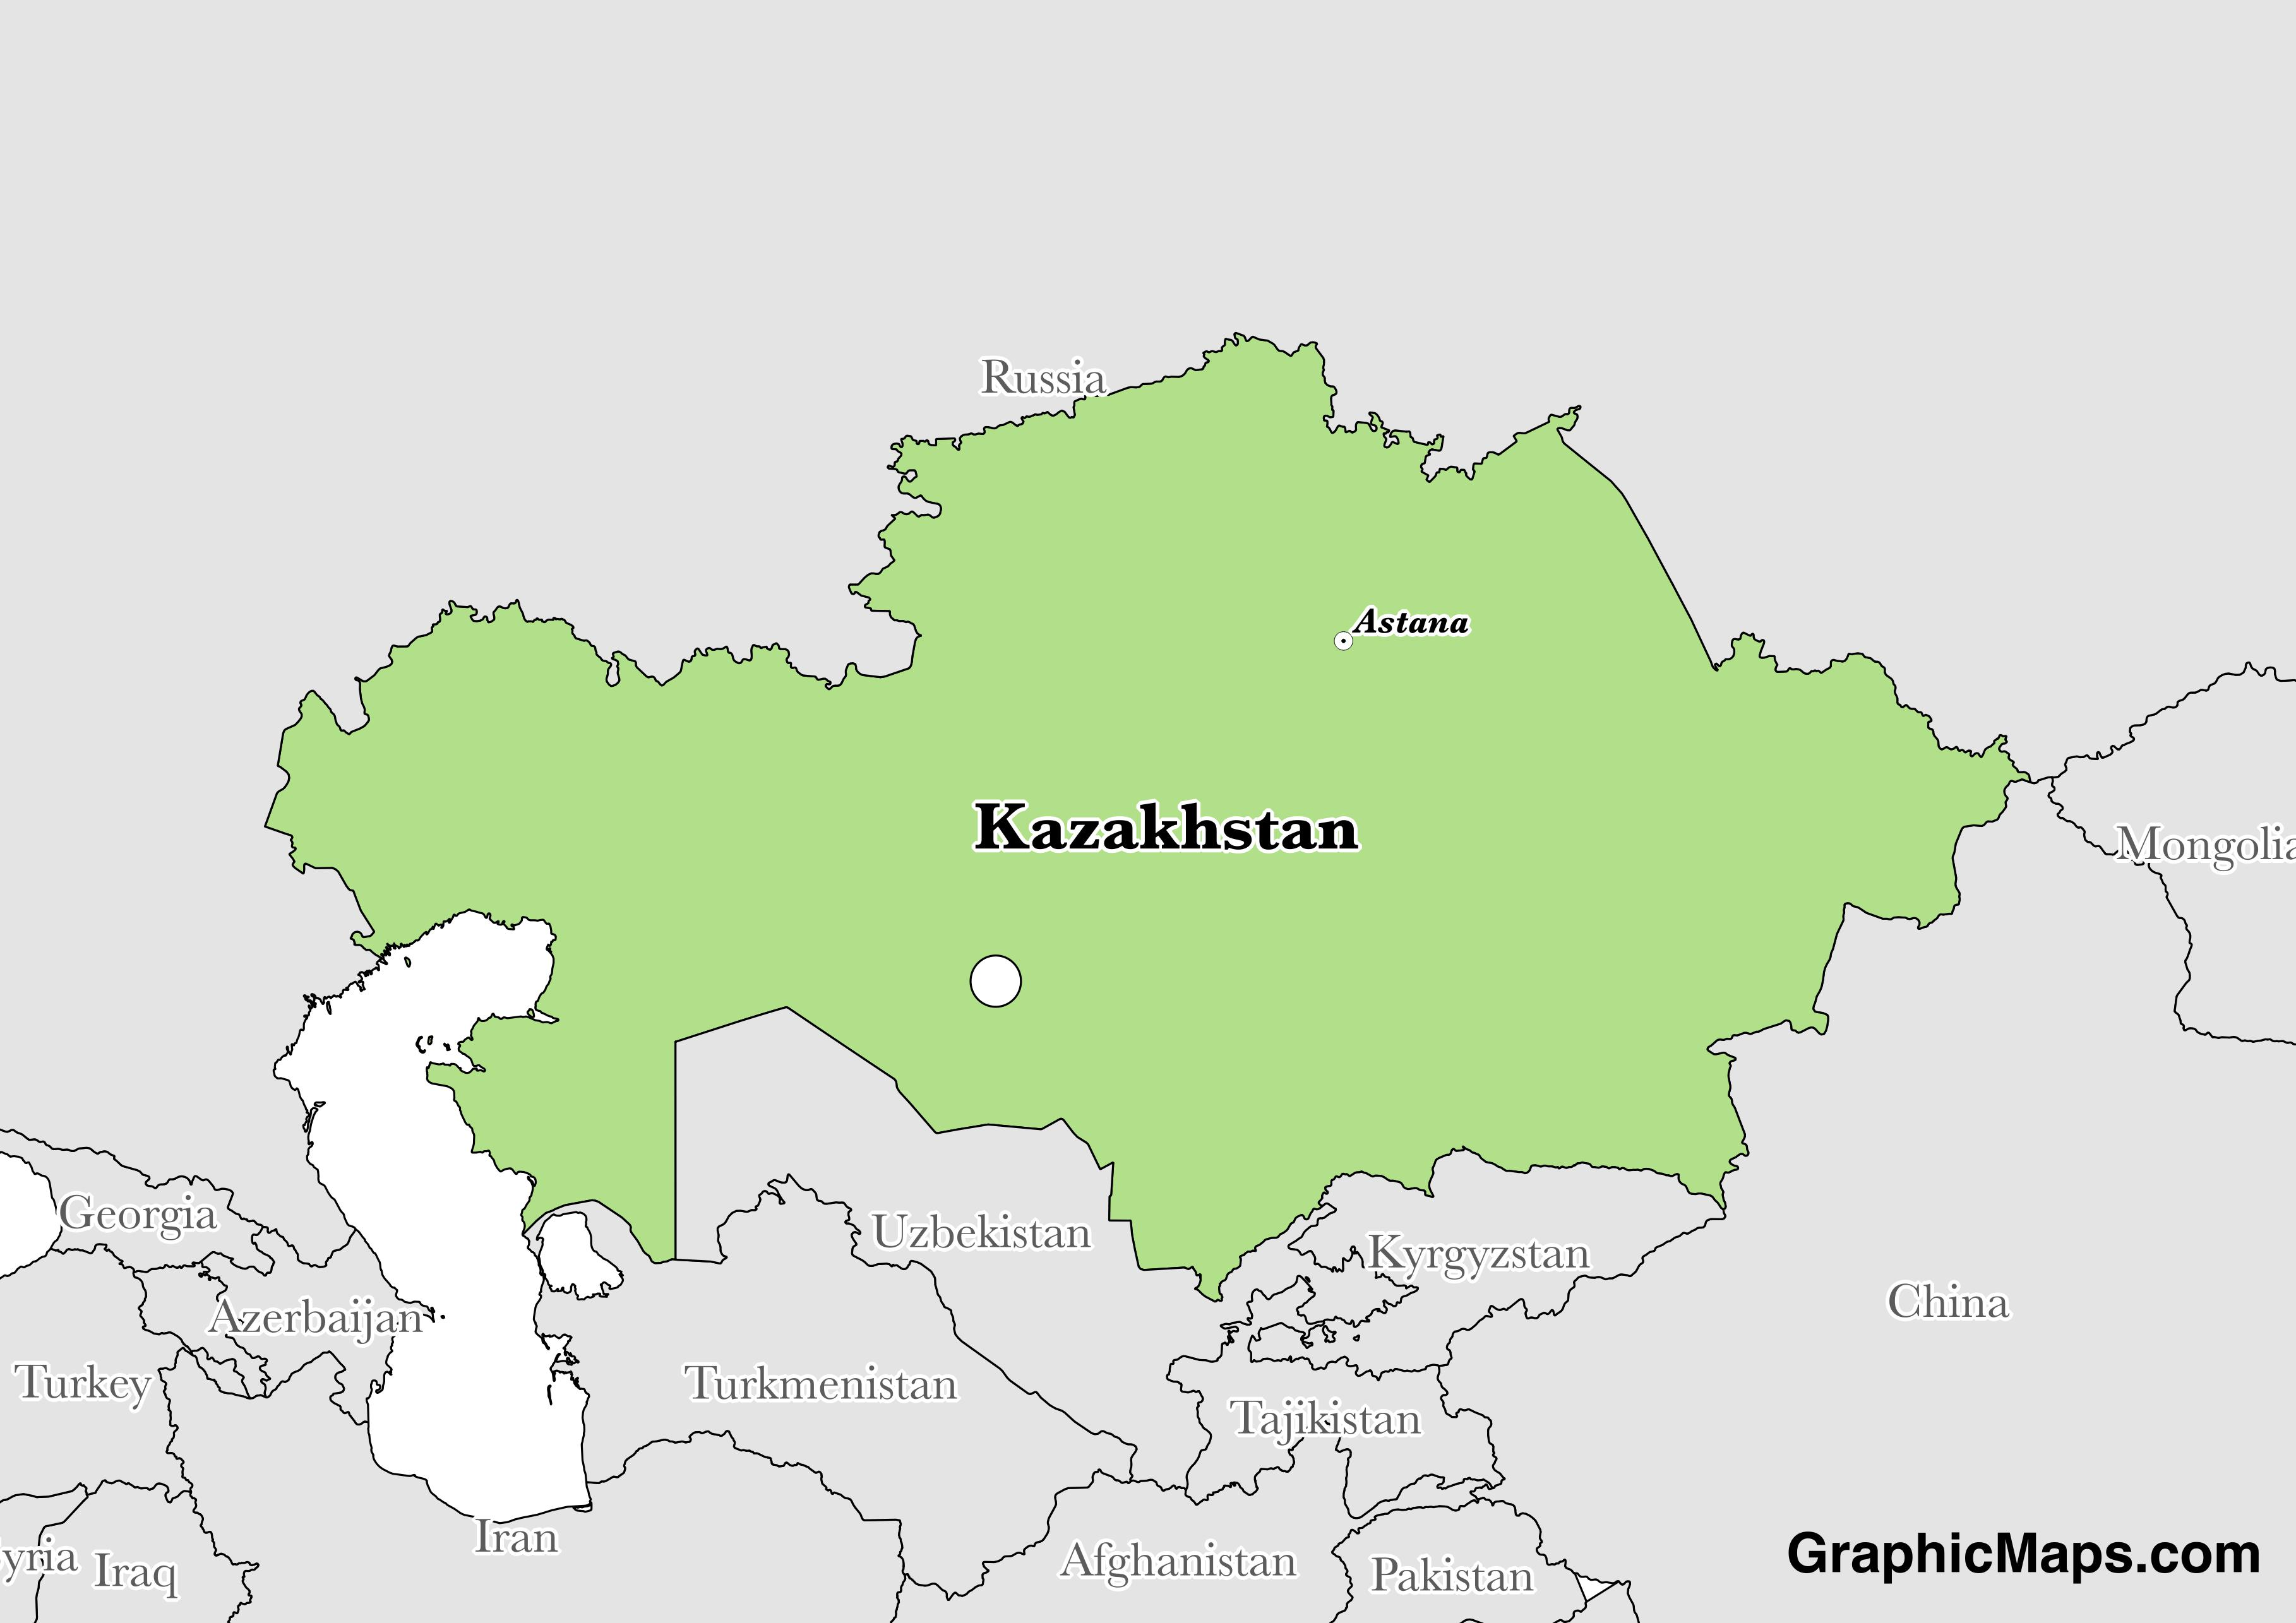 Map showing the location of Kazakhstan